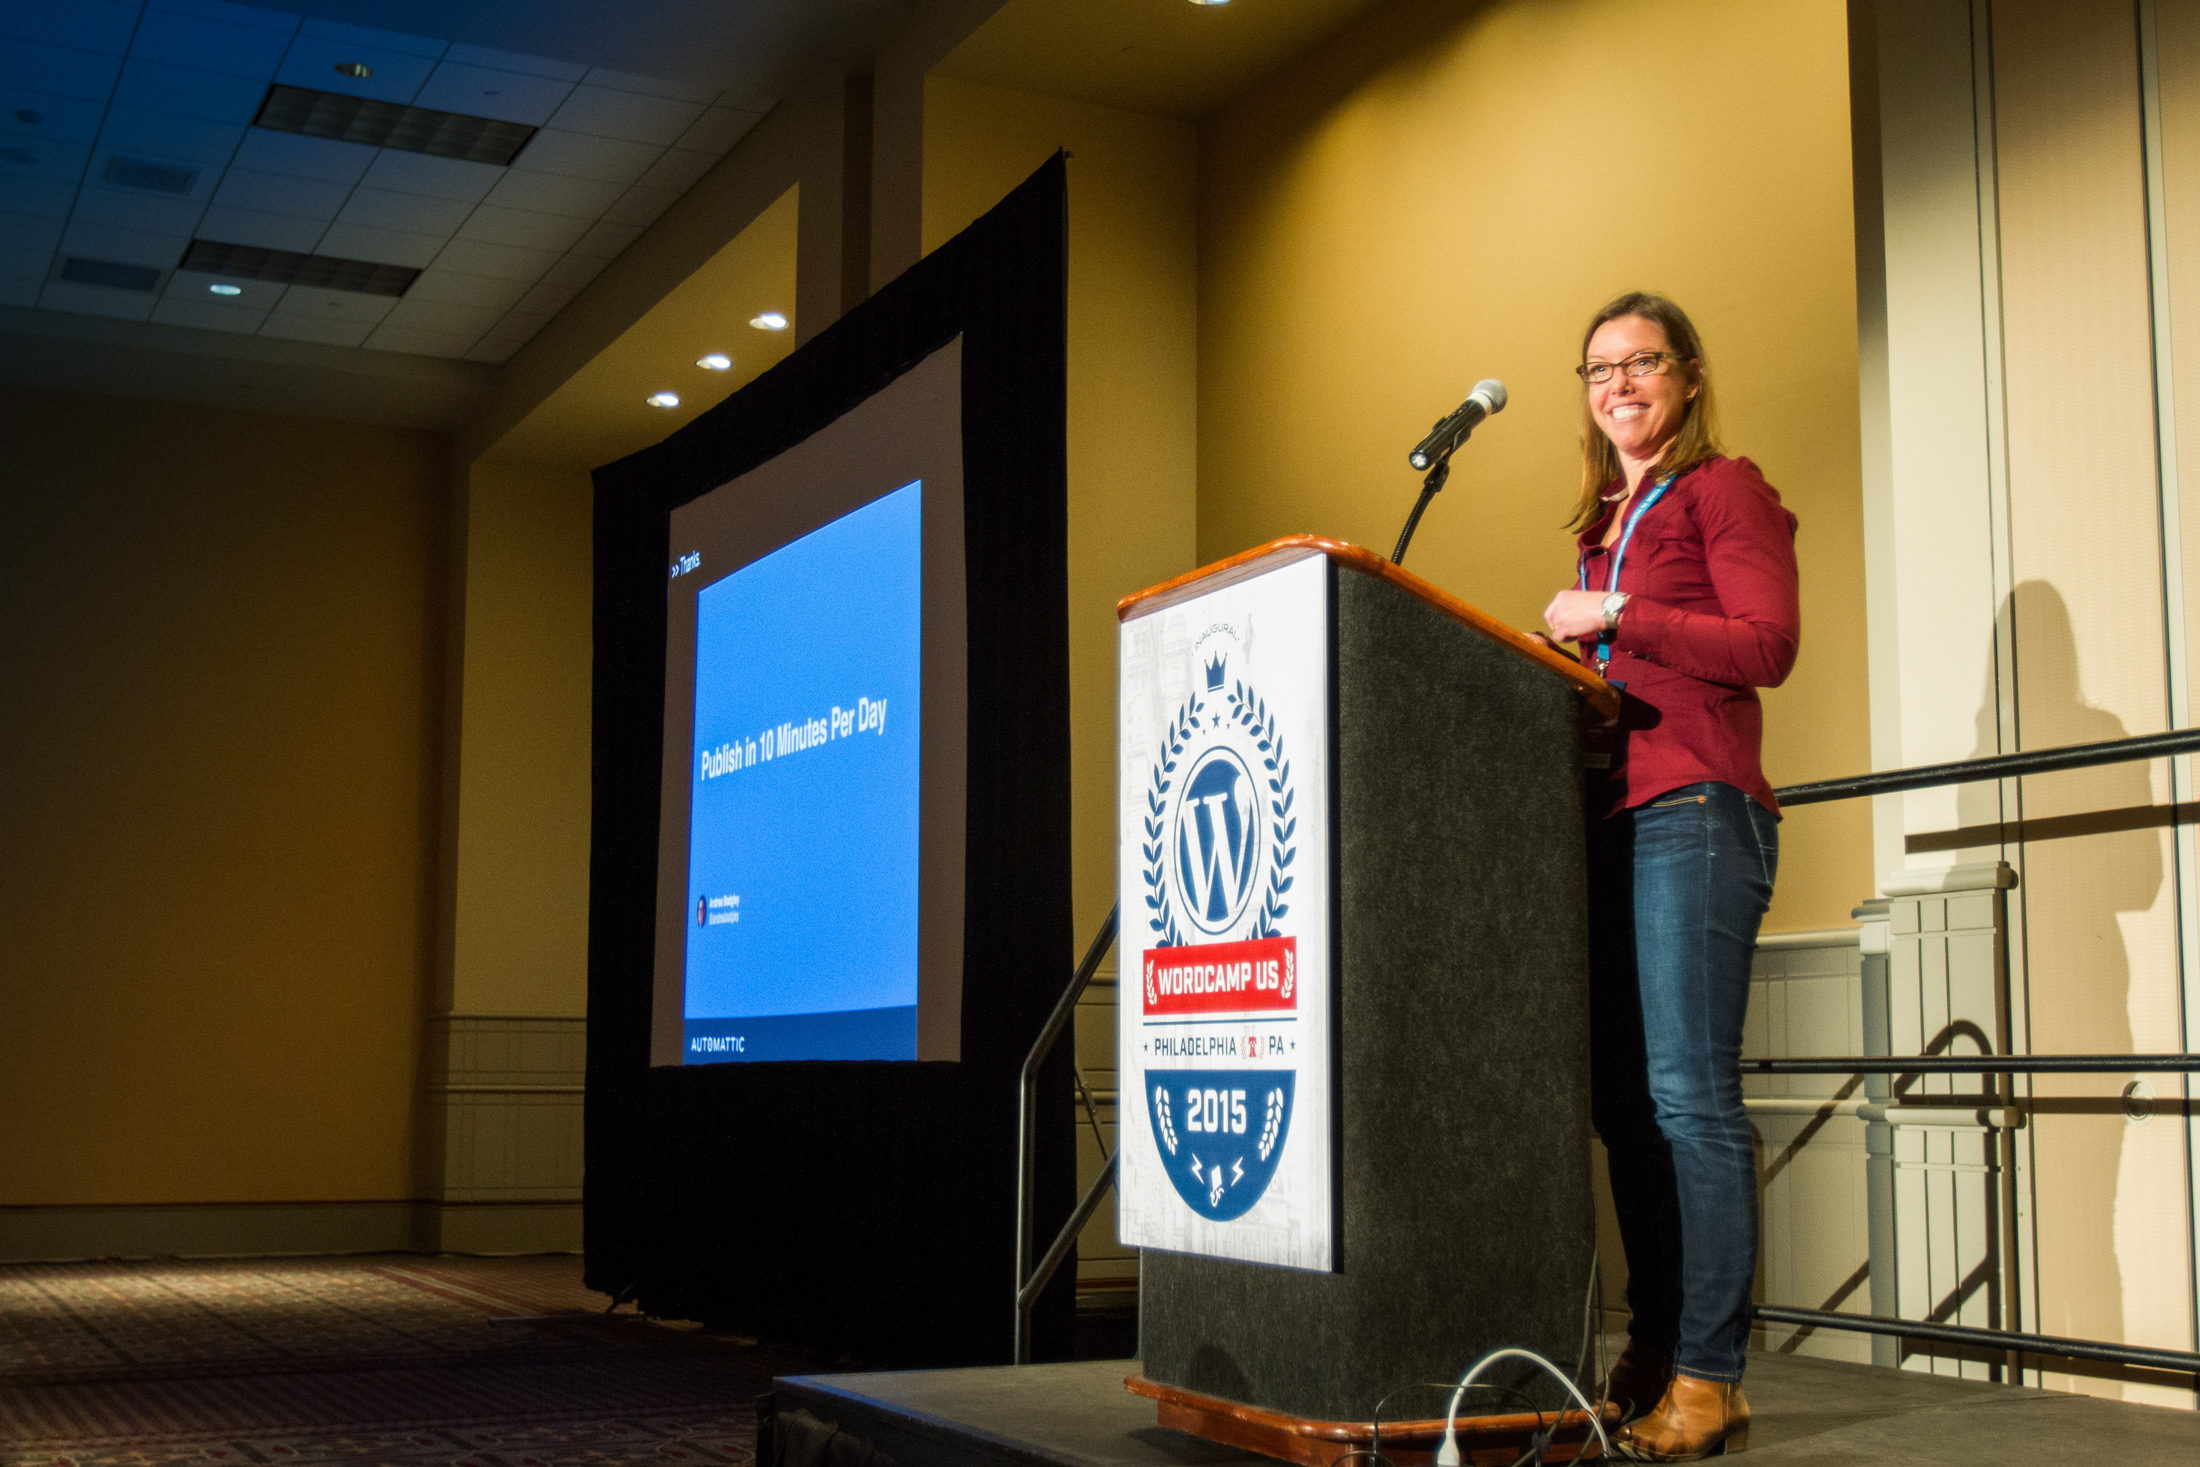 Andrea Badgley talks about Publish in 10 Minutes Per Day at WordCamp US 2015 #wcus Photo by Sheri Bigelow